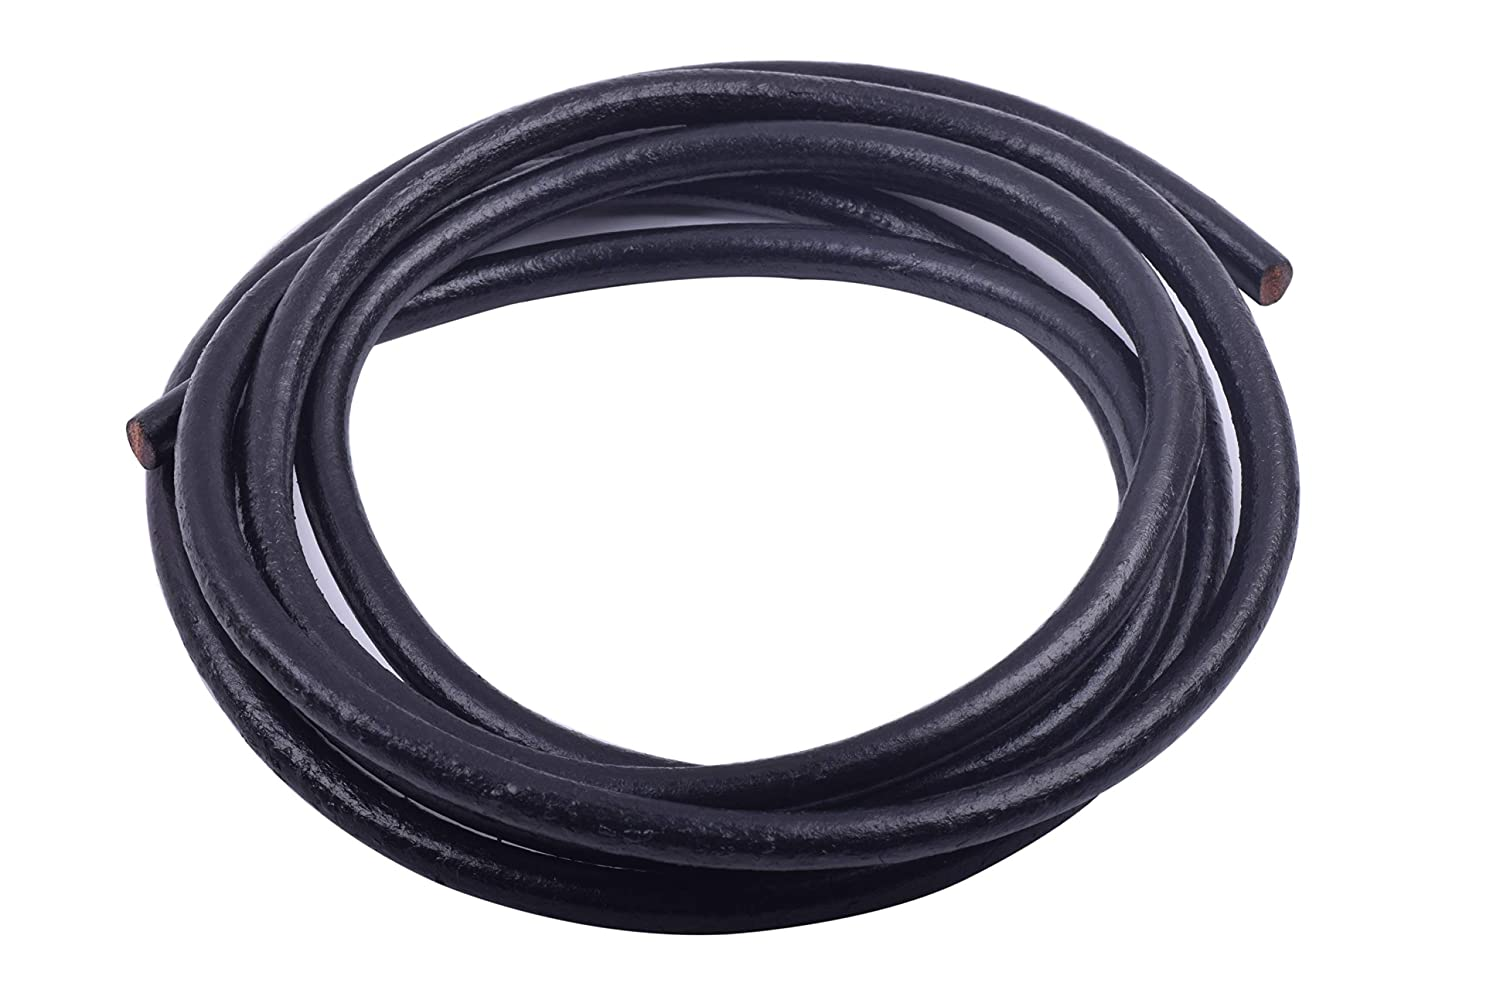 KONMAY 5 Yards 5.0mm Solid Round Real Leather Cord for Jewelry Making Crafting Beading Dark Natural